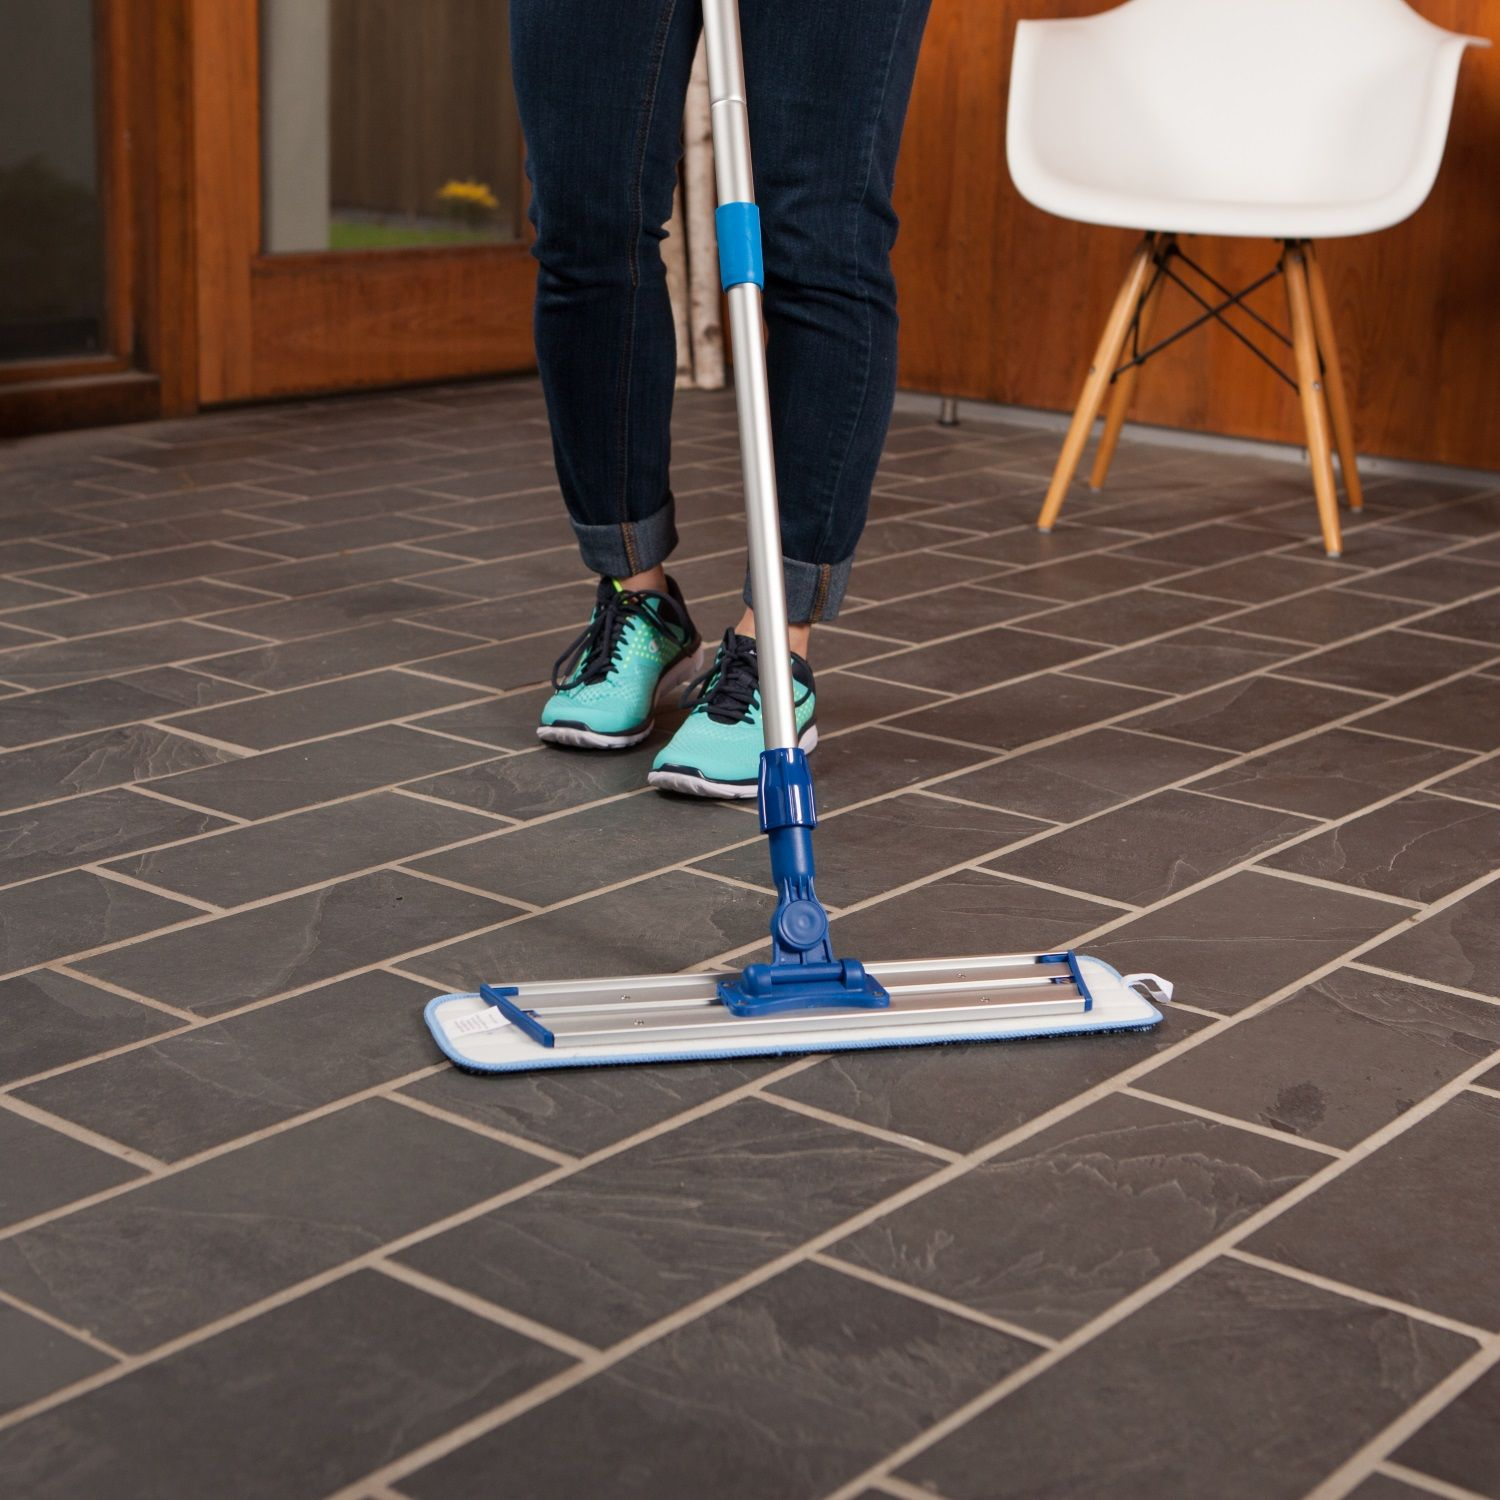 Microfiber Mop System Grout cleaner, Cleaning, Cleaning